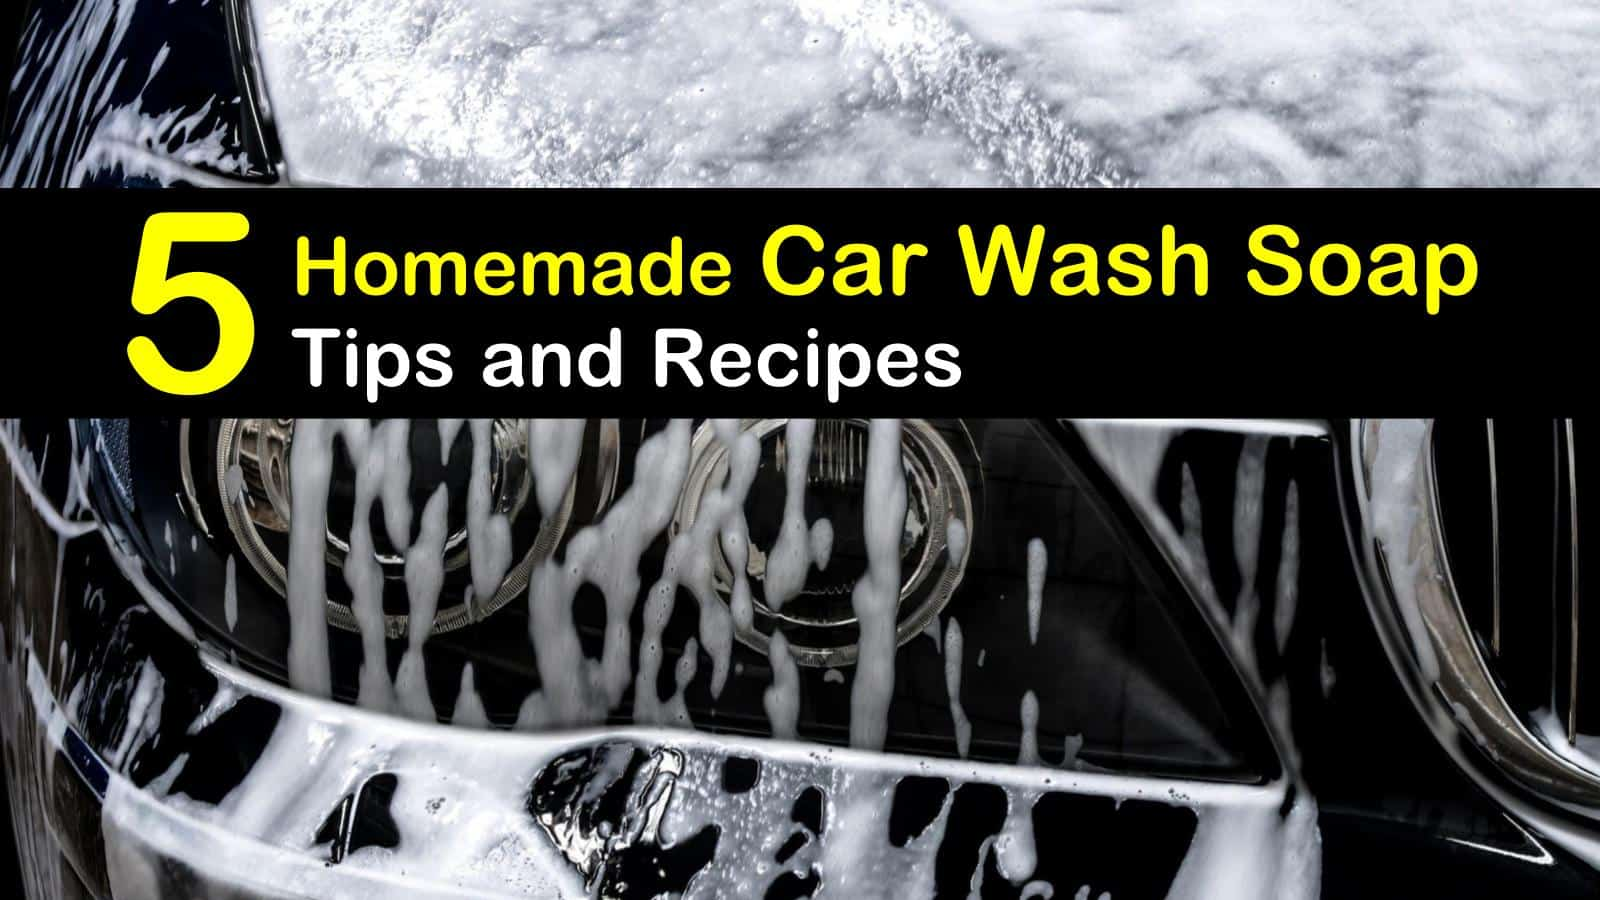 Homemade Car Wash Soap Recipes 5 Tips For Washing Your Car